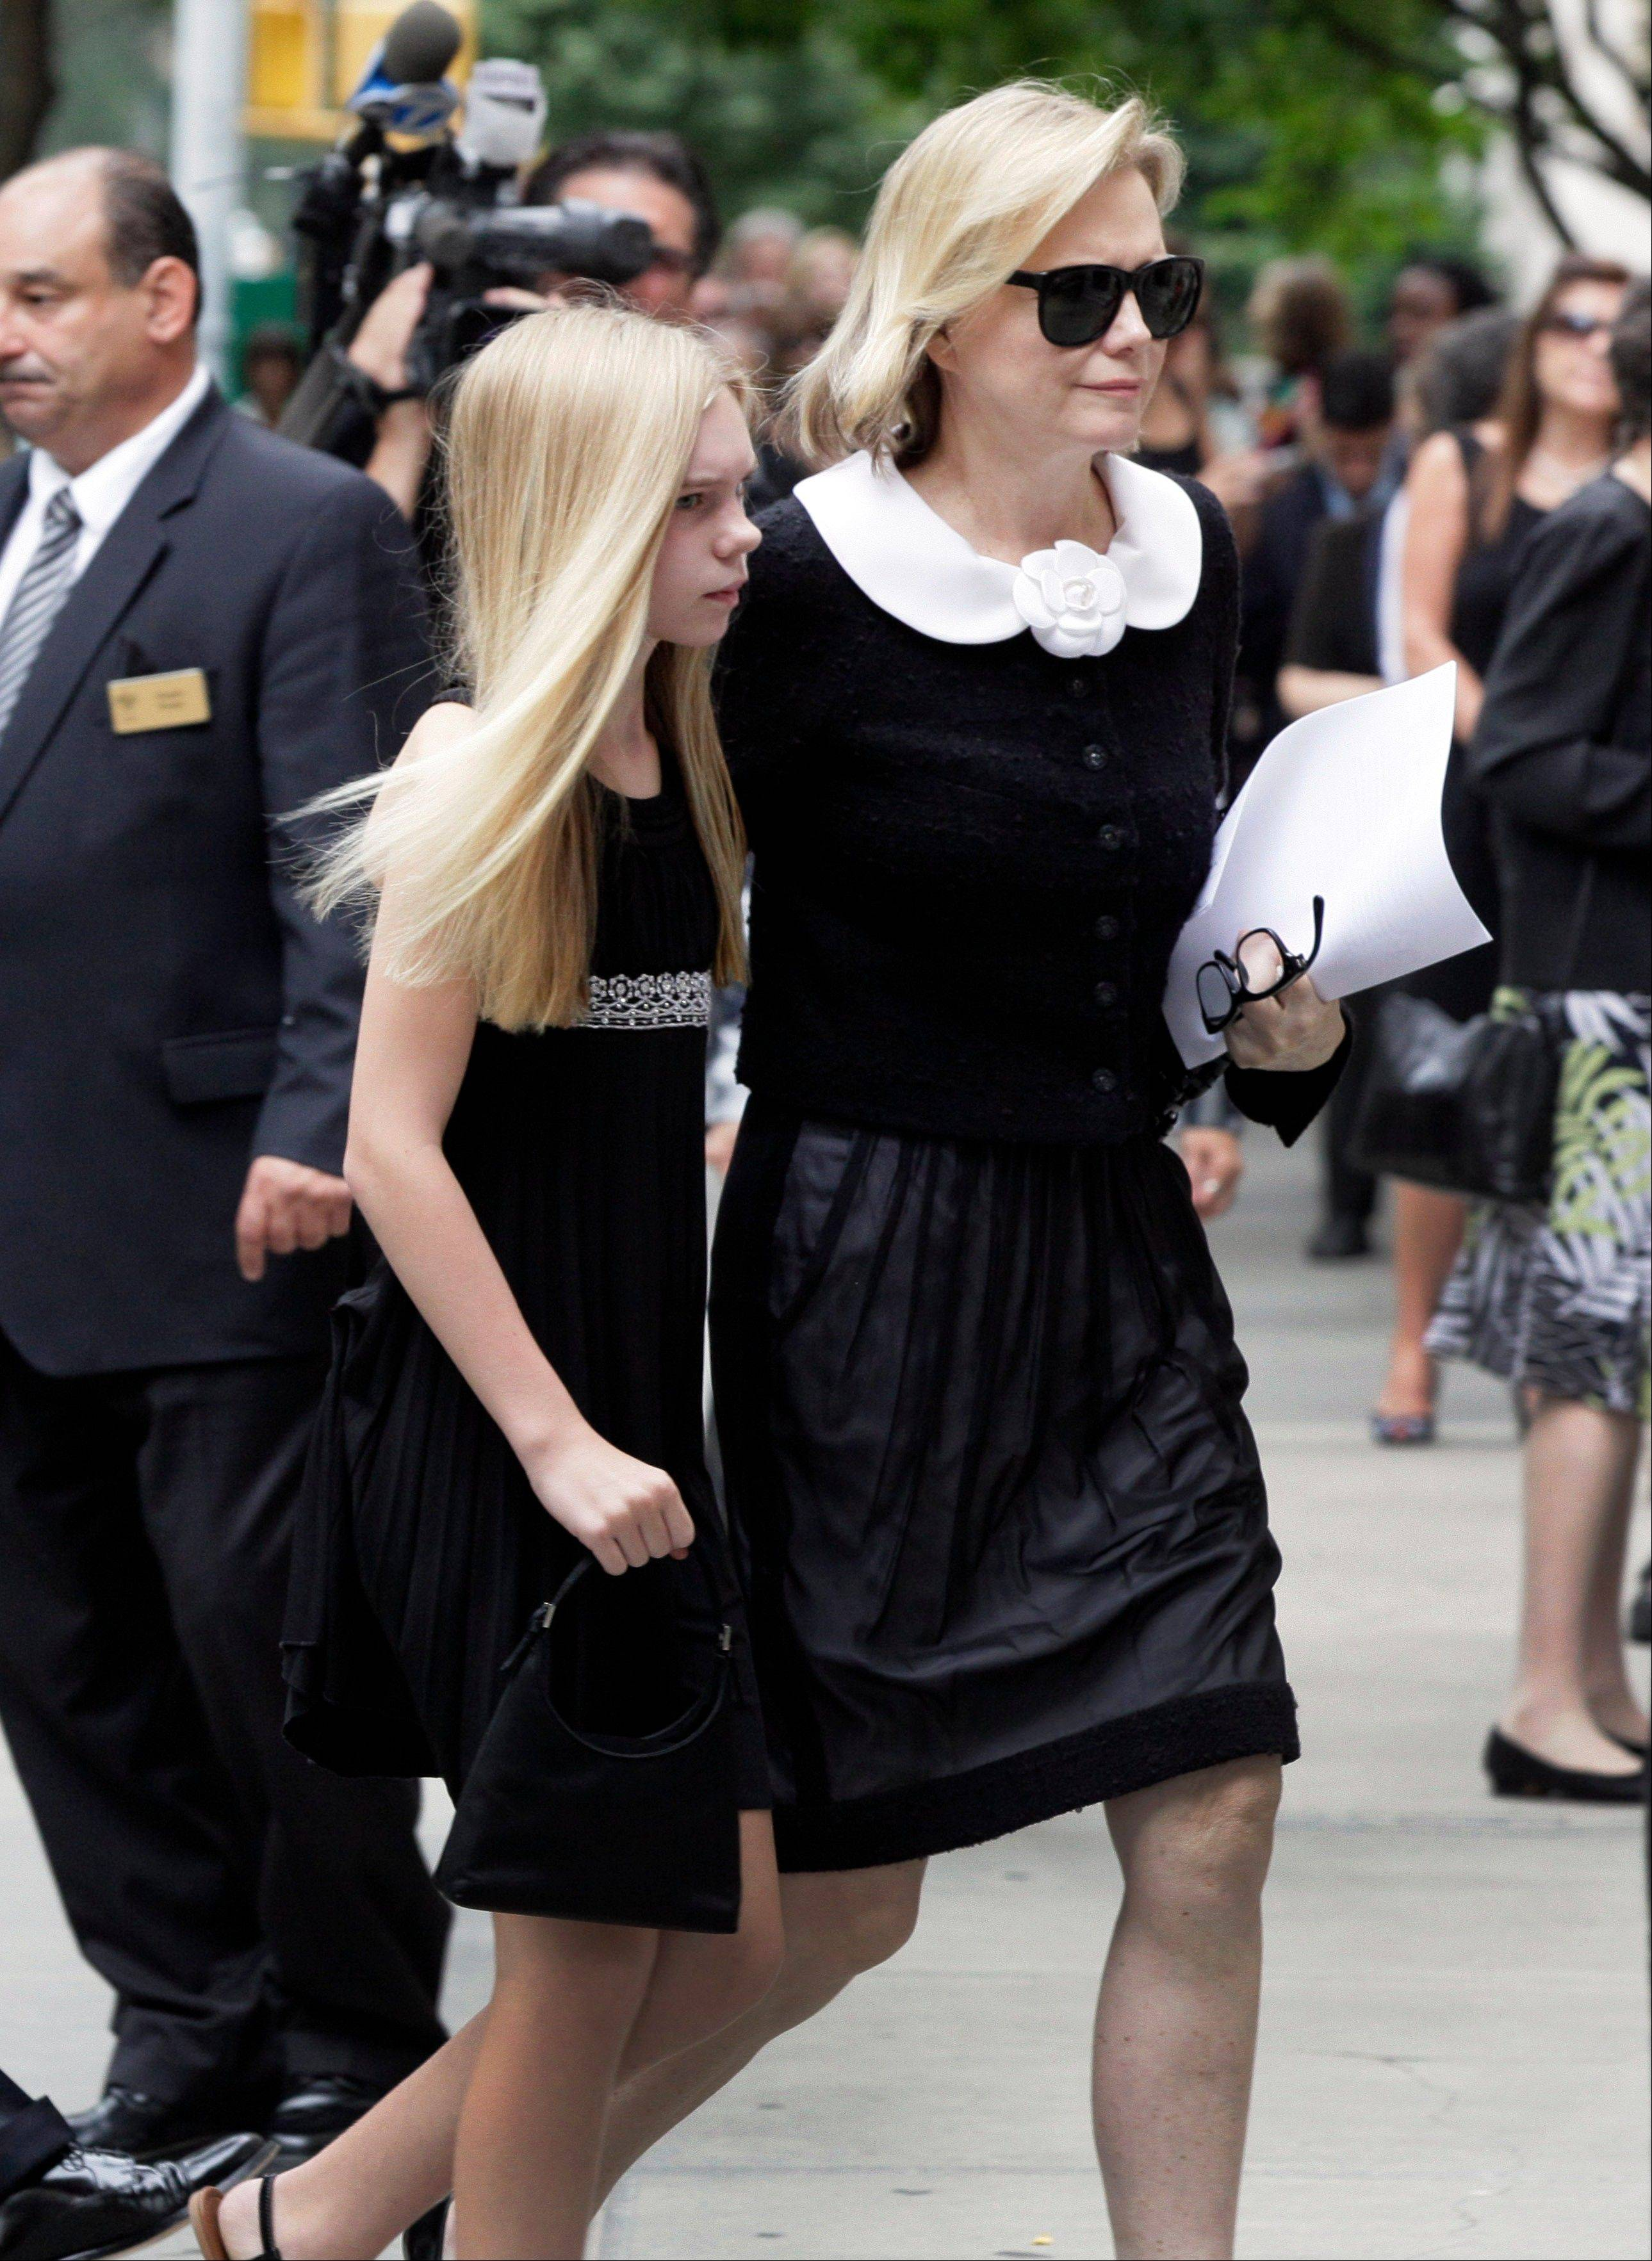 Terre Blair, wife of Marvin Hamlisch, arrives for his funeral service, in New York's Temple Emanu-El, Tuesday.